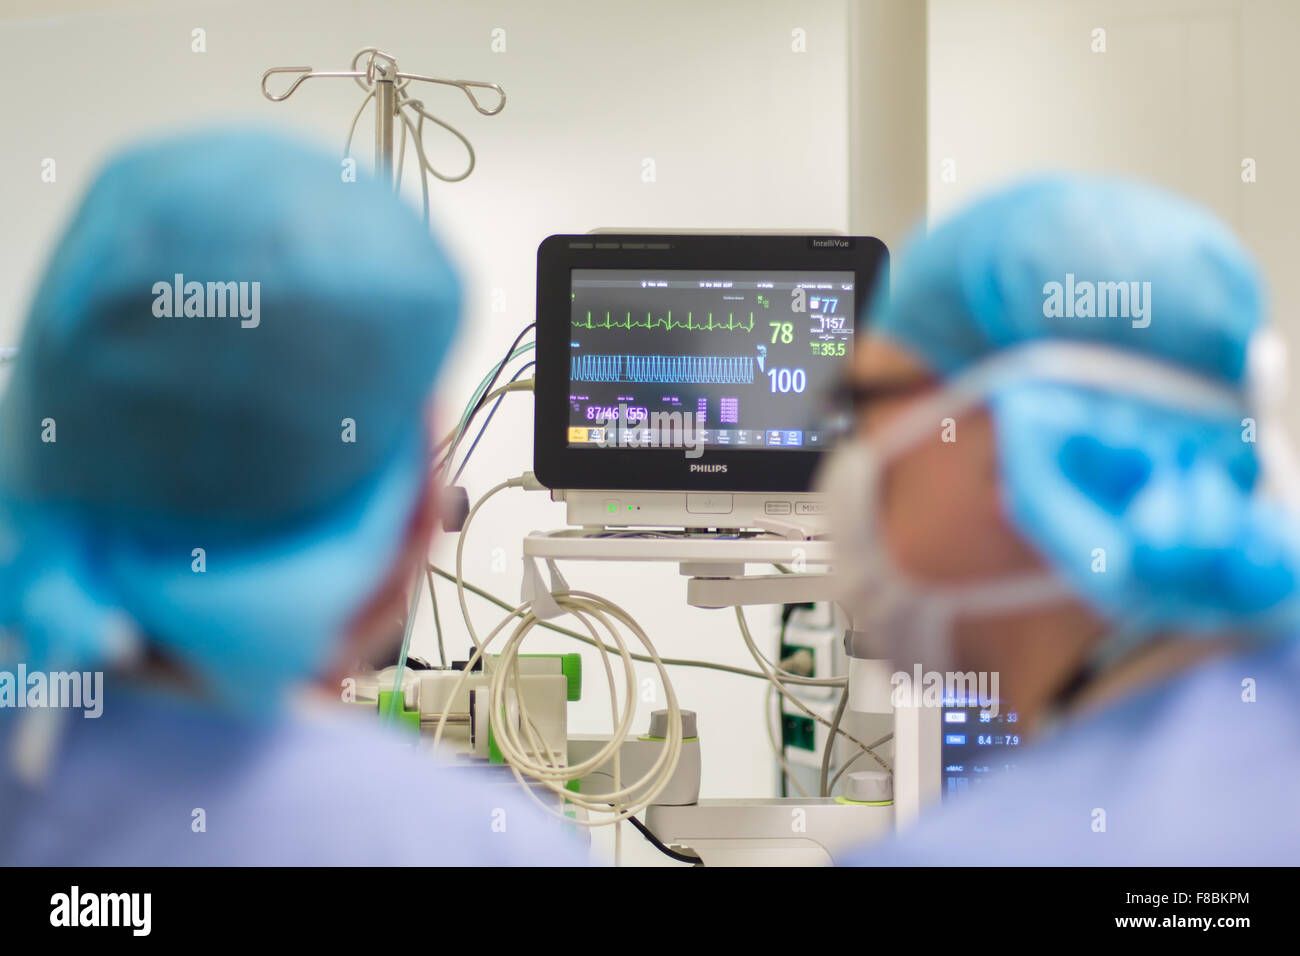 Surgical monitors being used to track the vital signs of a patient during an operation. - Stock Image